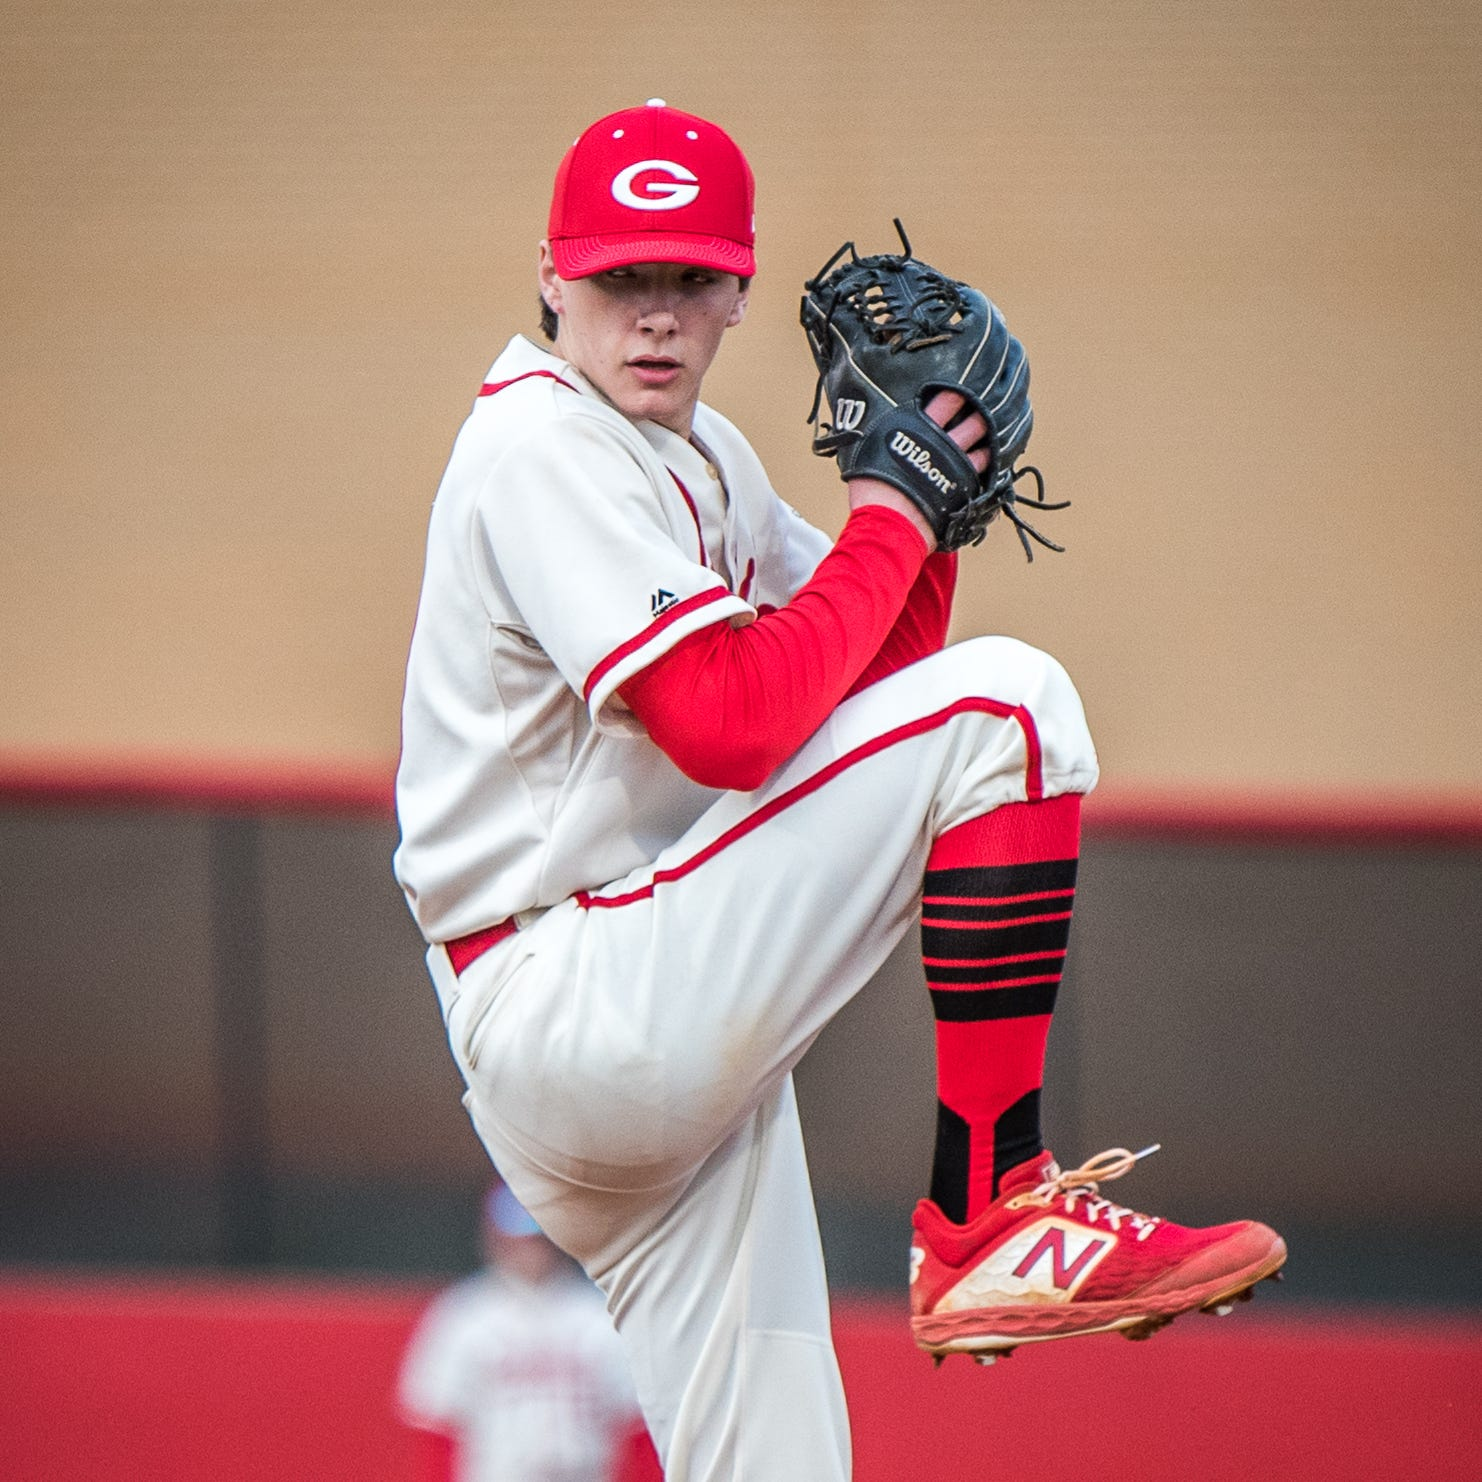 Greenville High pitcher Rocco Reid and the Red Raiders are the No. 1 seed in District 2 Class AAAA baseball playoffs.